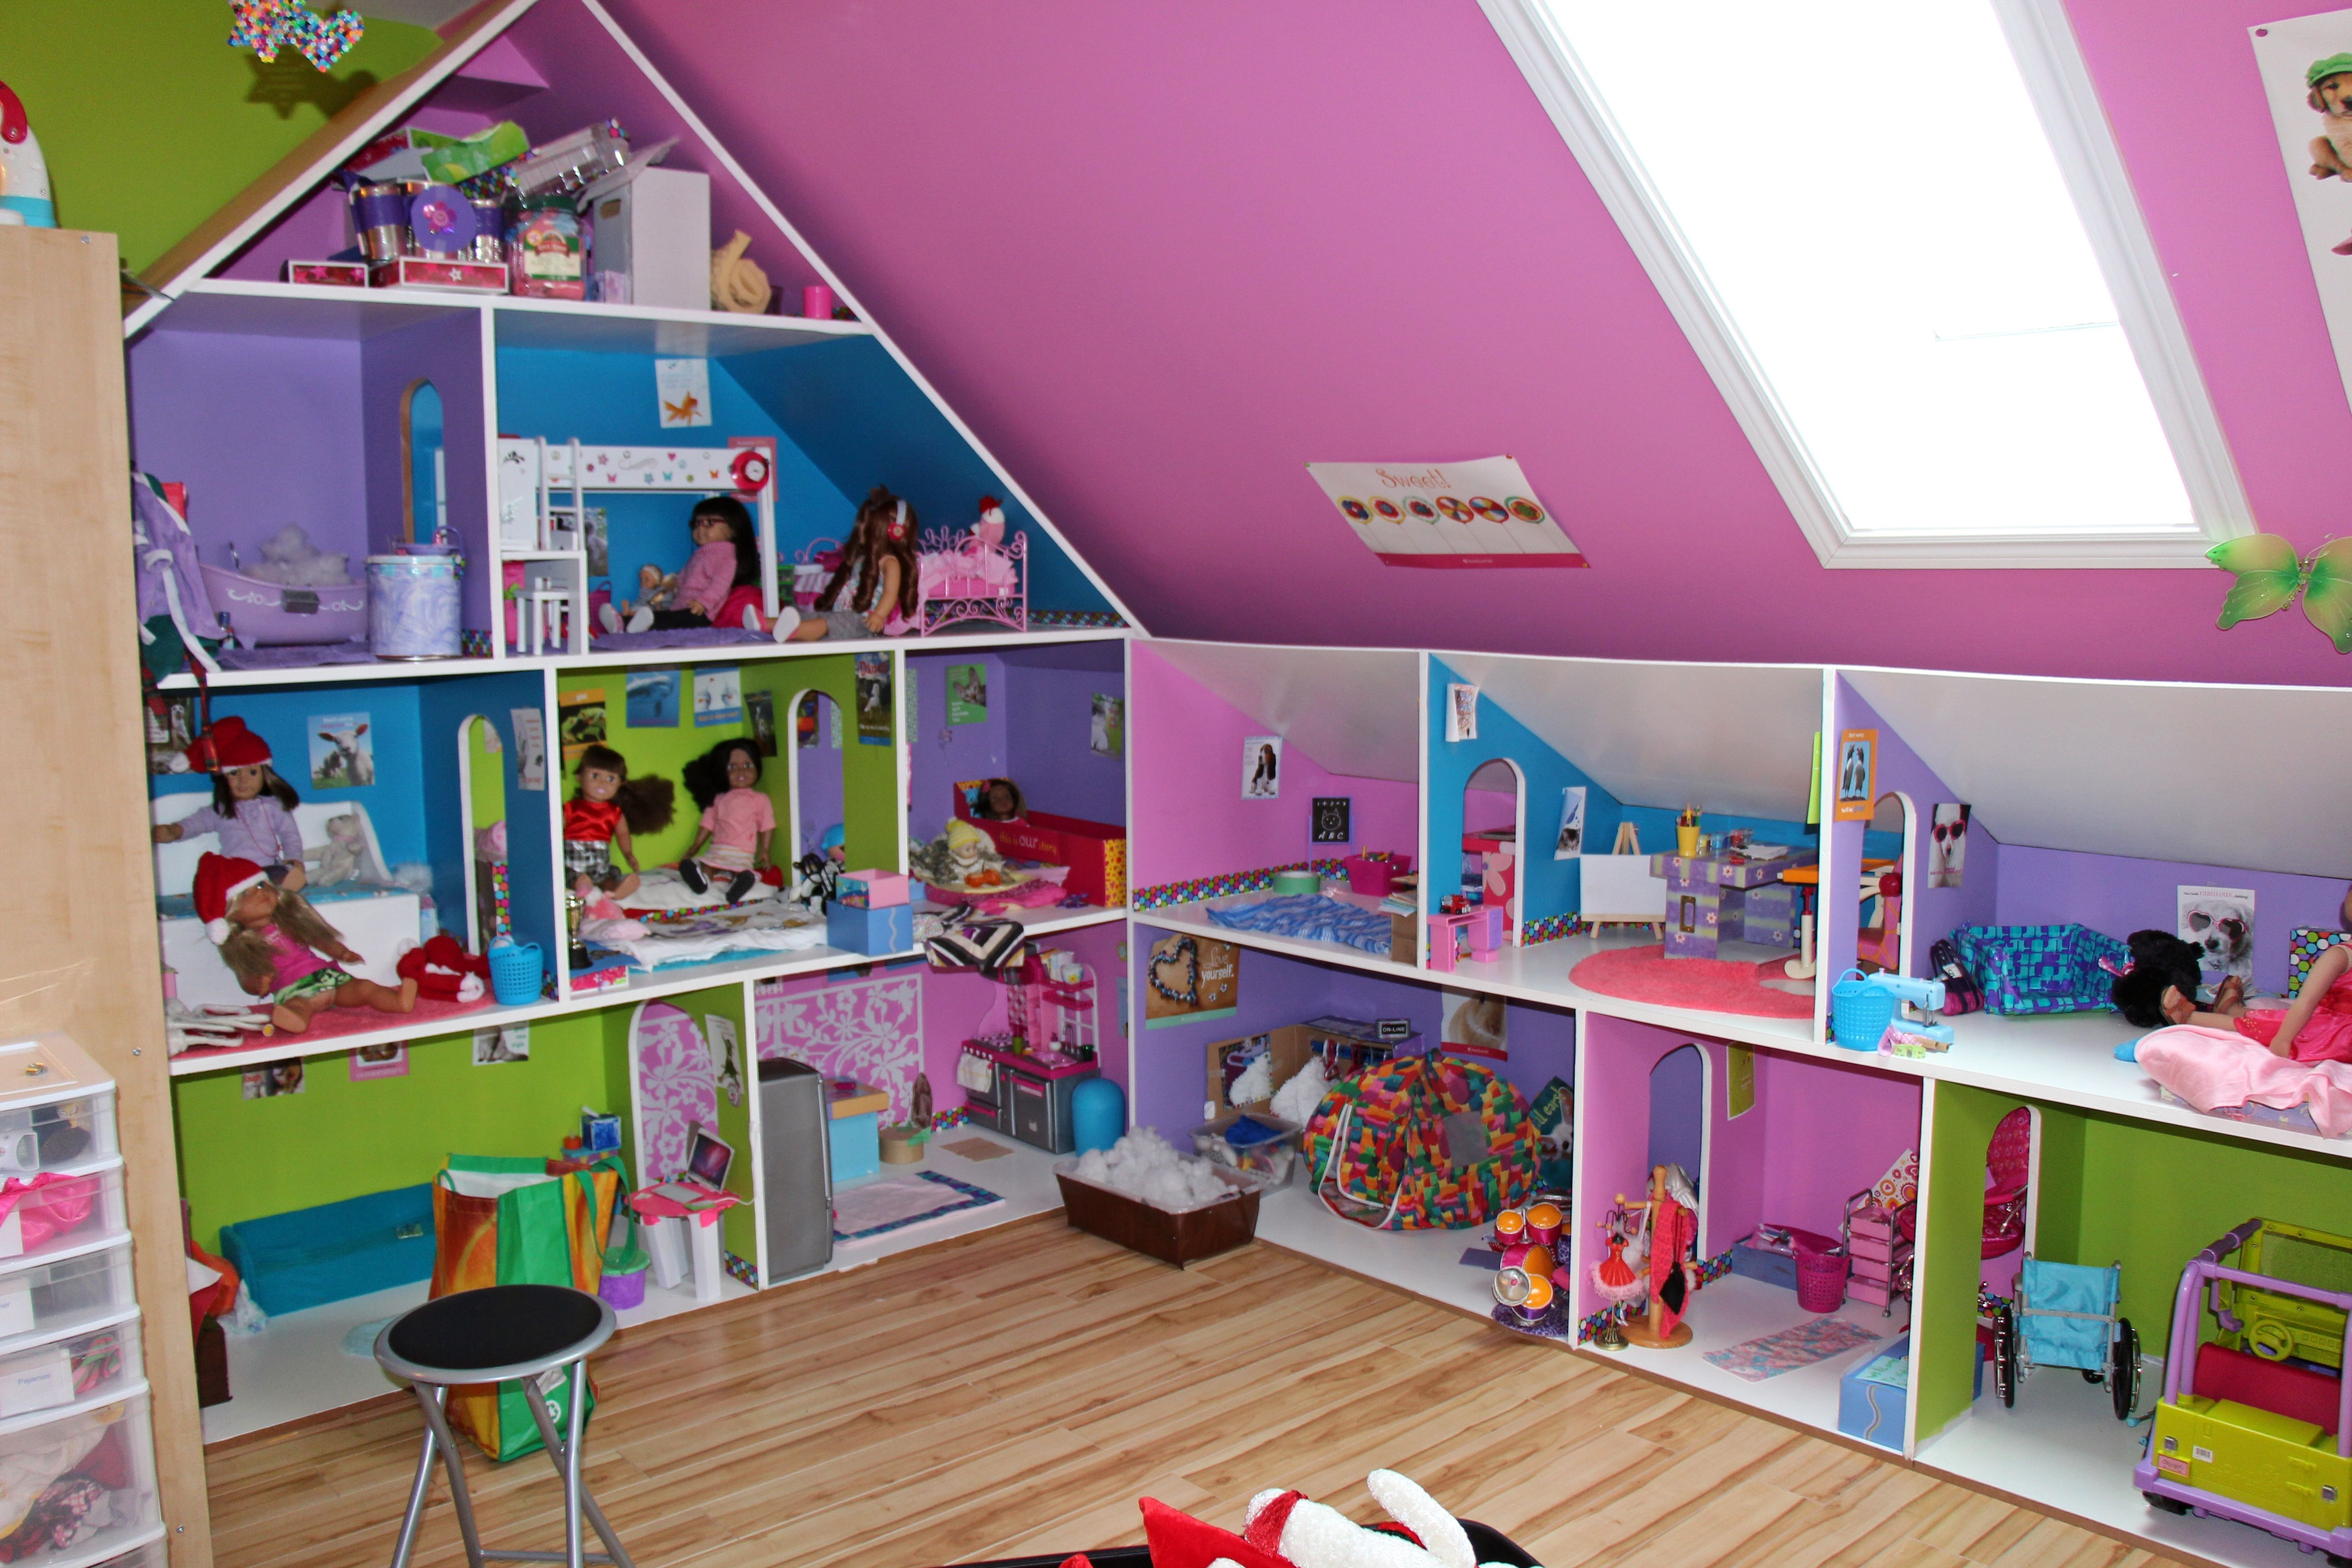 The Dollhouse For 18 Dolls Built With Mdf Board 8 Ft In Height 8